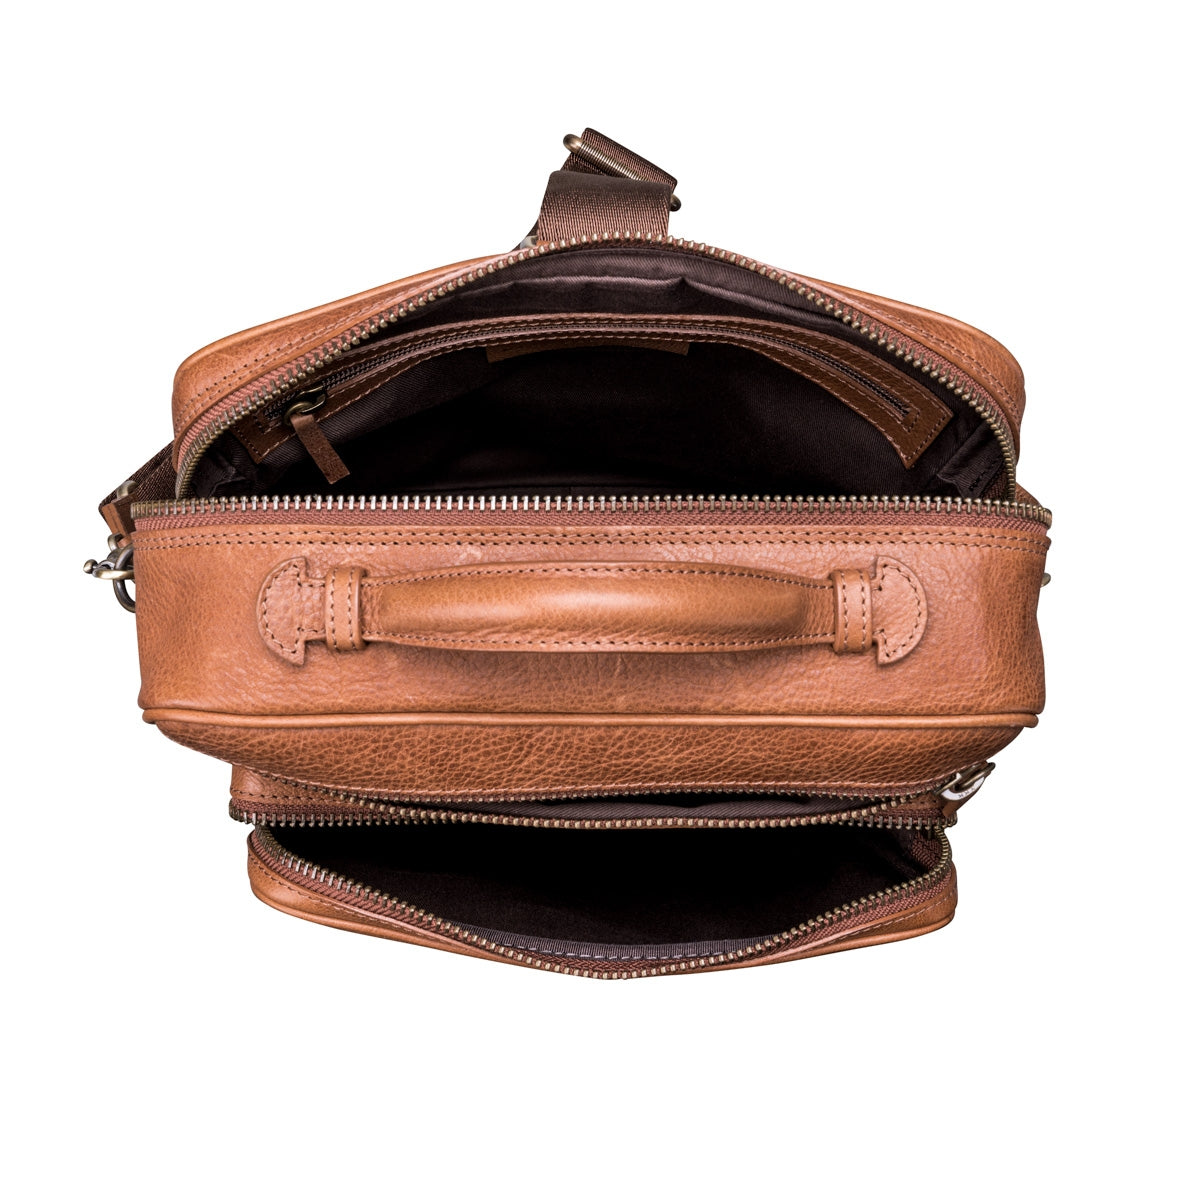 Image 7 of the 'SantinoL' Large Camel Leather Convertible Backpack Crossbody Bag For Men